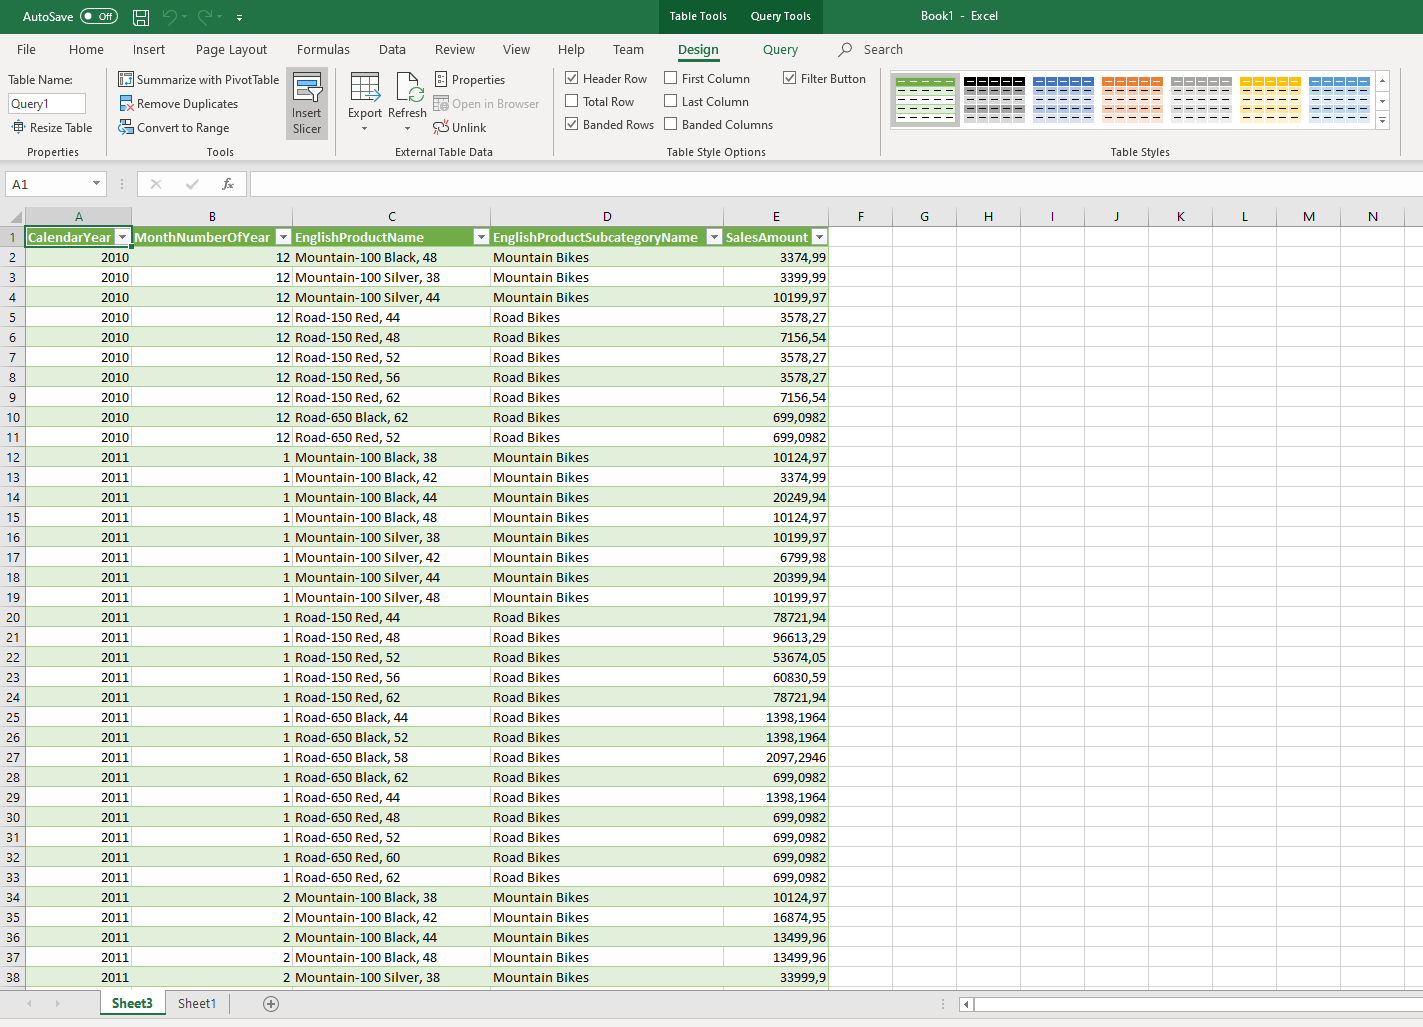 data has been successfully loaded - how to execute sql query from excel_